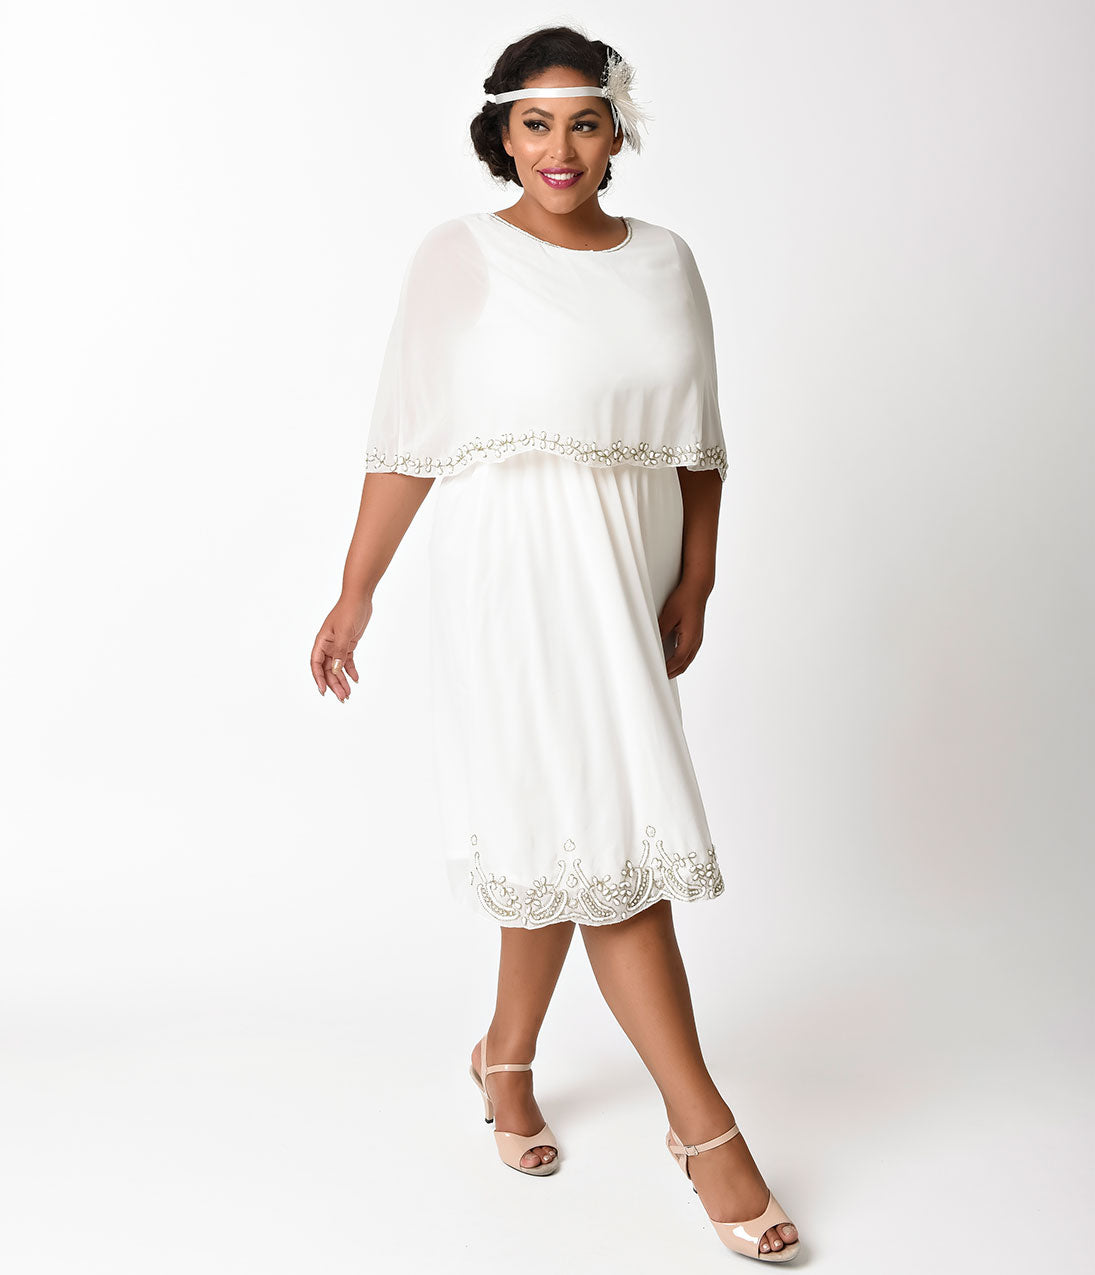 1940s Style Wedding Dresses | Classic Wedding Dresses Vintage Style Plus Size Ivory Cream Mesh Cape Flapper Dress $75.00 AT vintagedancer.com